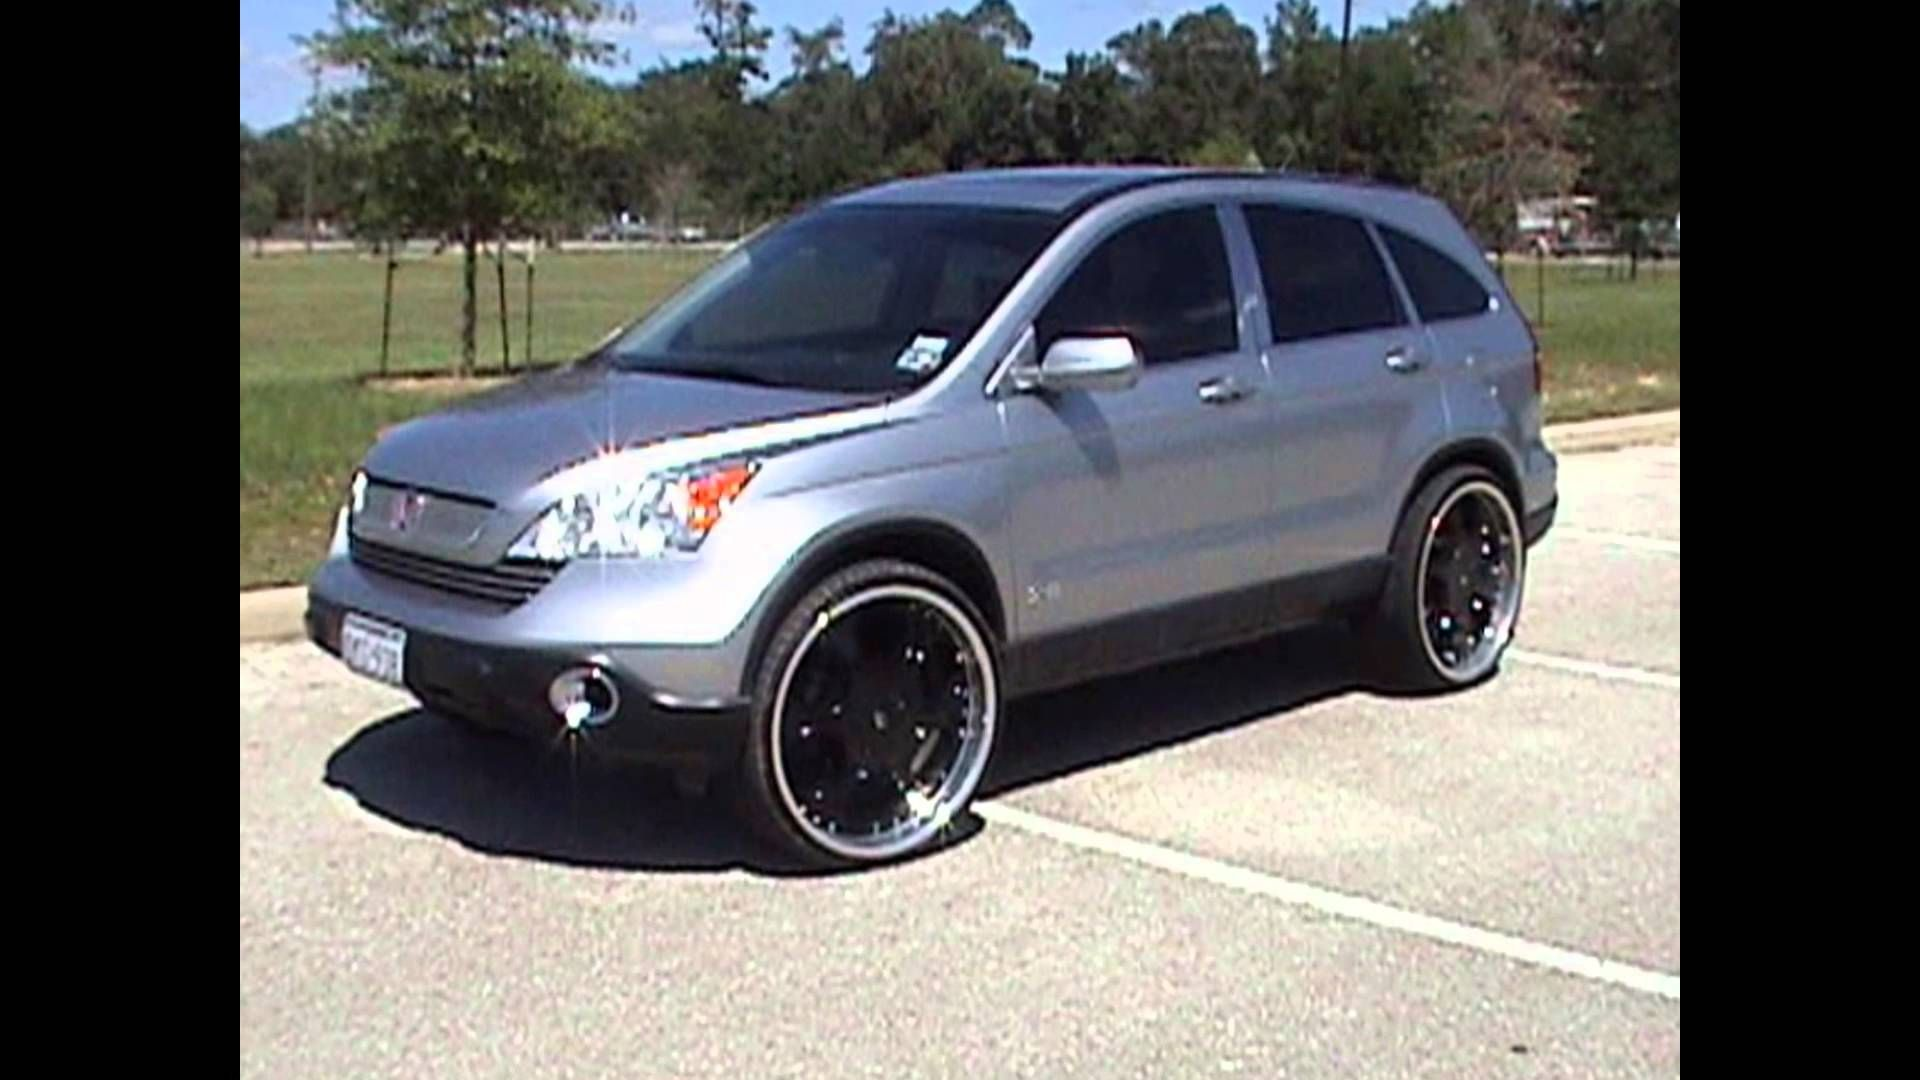 HONDA CRV- 50 different looks for your rod.